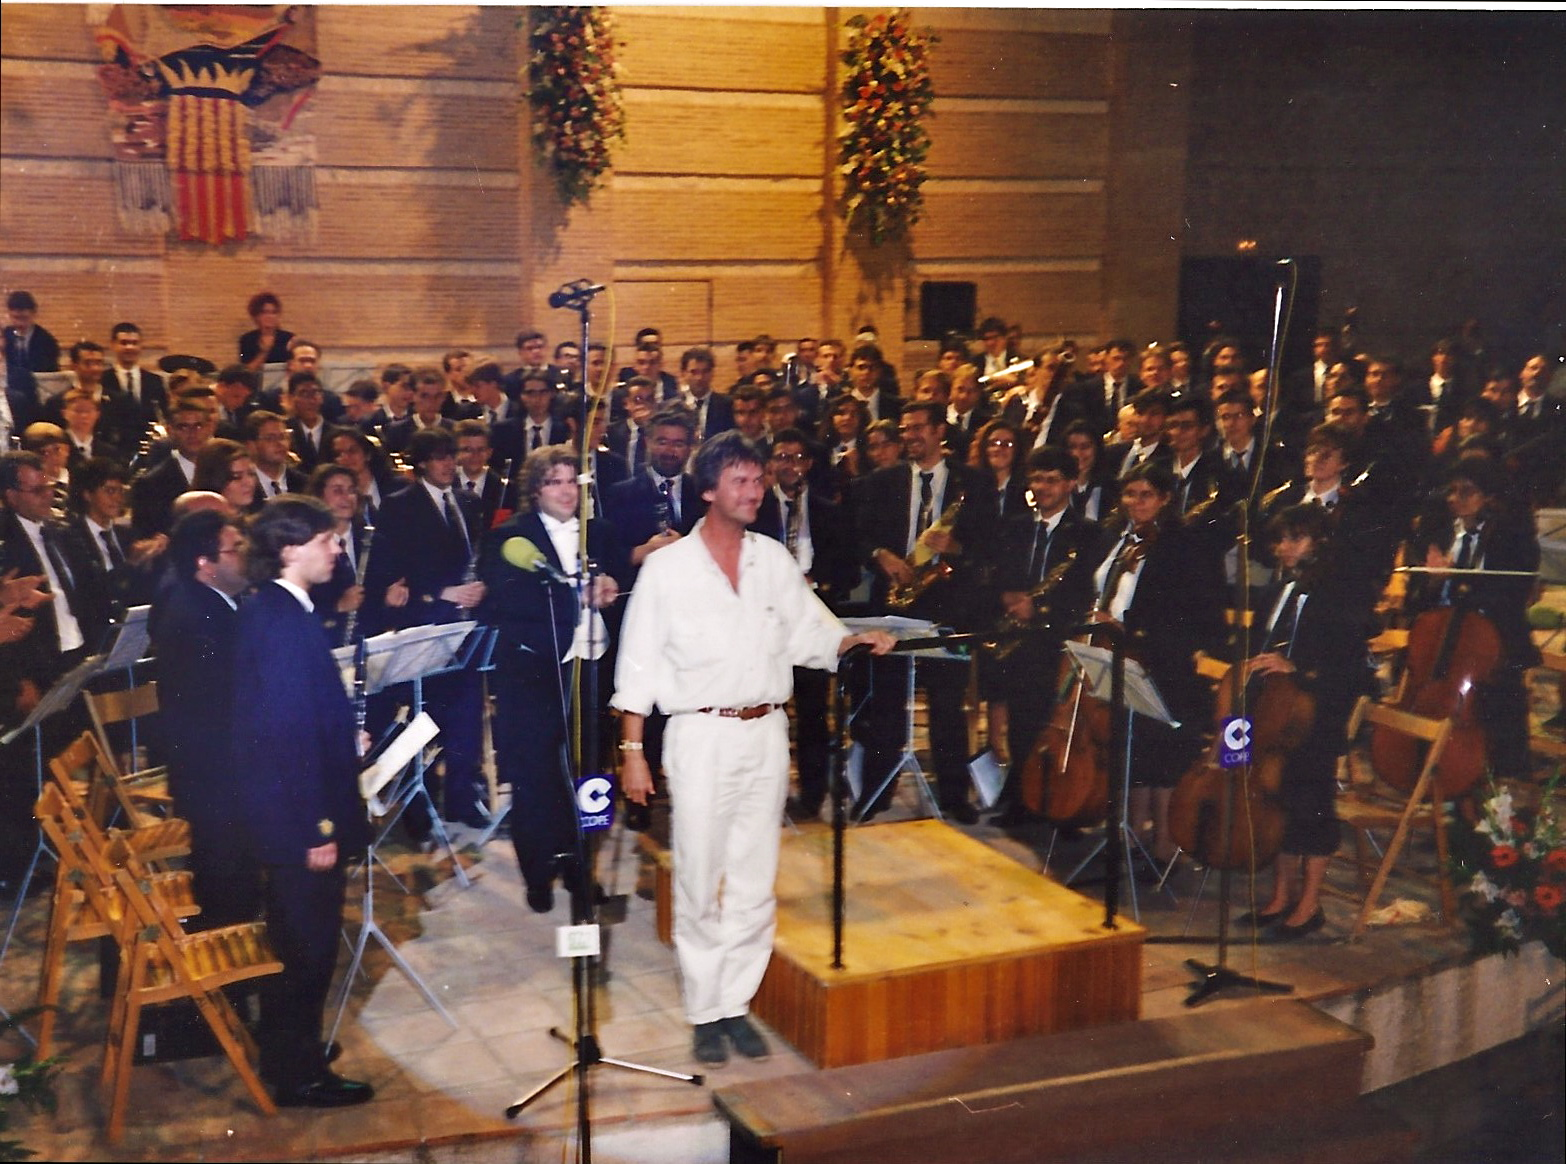 The Spanish première of The Big Apple in Buñol, Spain - August 1995. Performed by La Artistica Buñol, conducted by Maestro Henrie Adams, during the famous annual 'Mano a Mano' concert in the outdoor auditorium San Luis, Buñol.